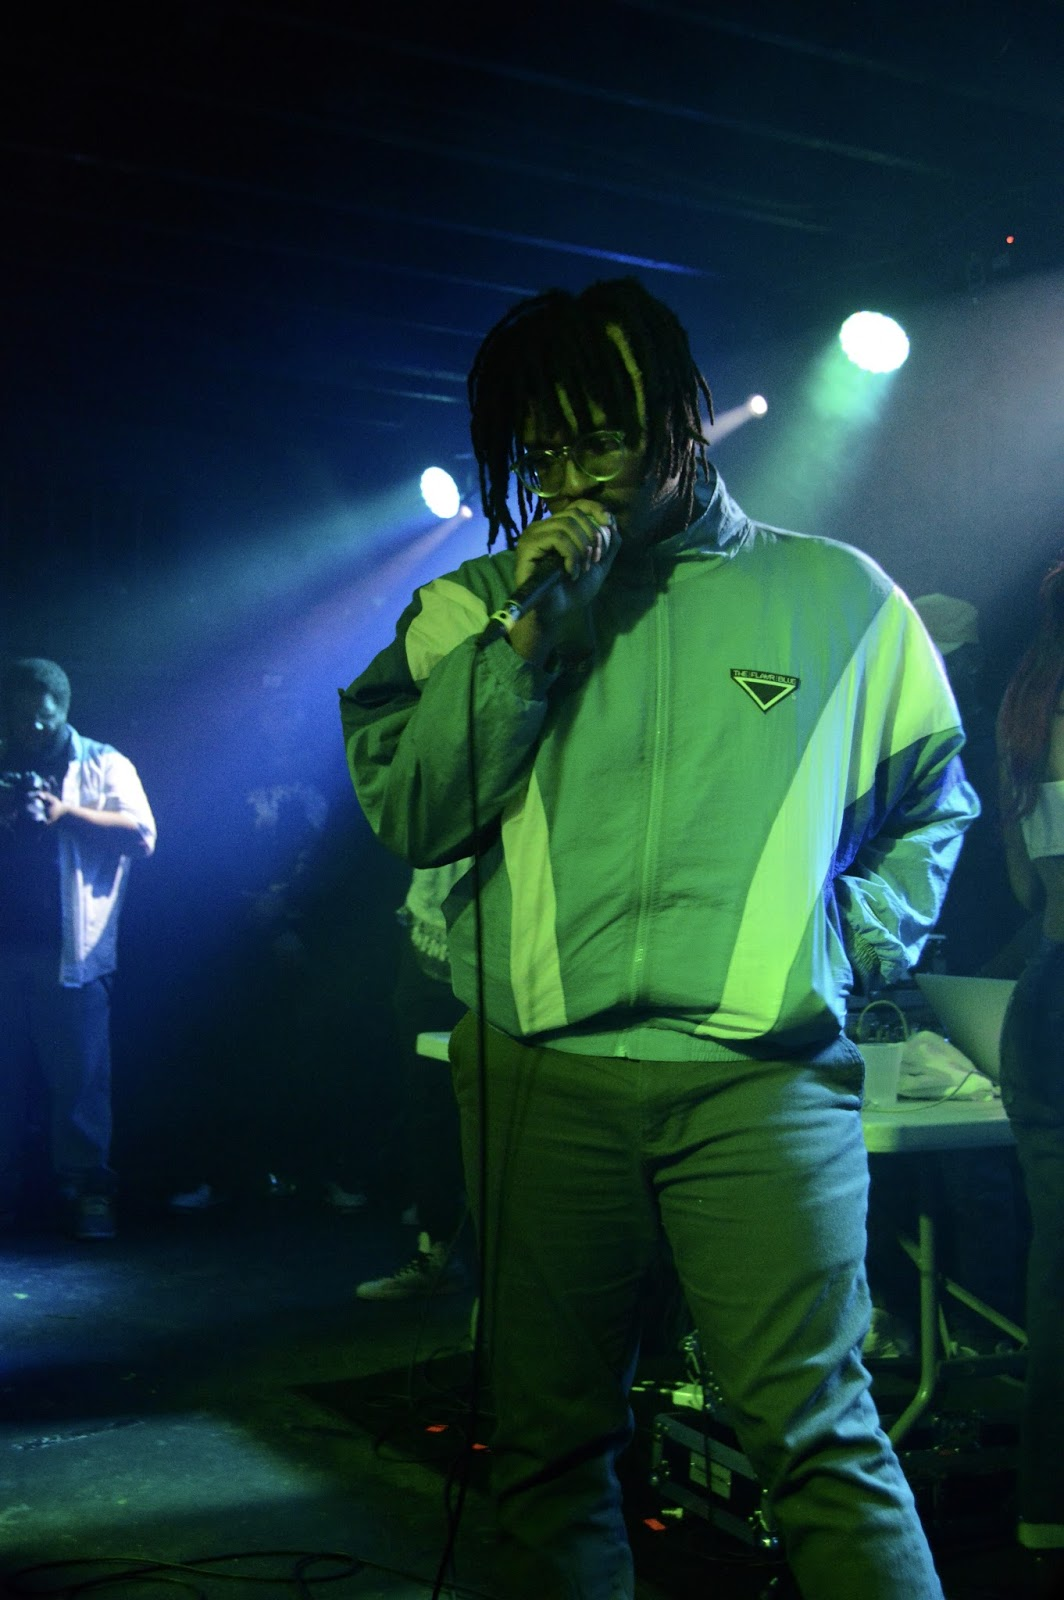 Photo Gallery: Father/Lord Narf/KeithCharles Spacebar + others at ...